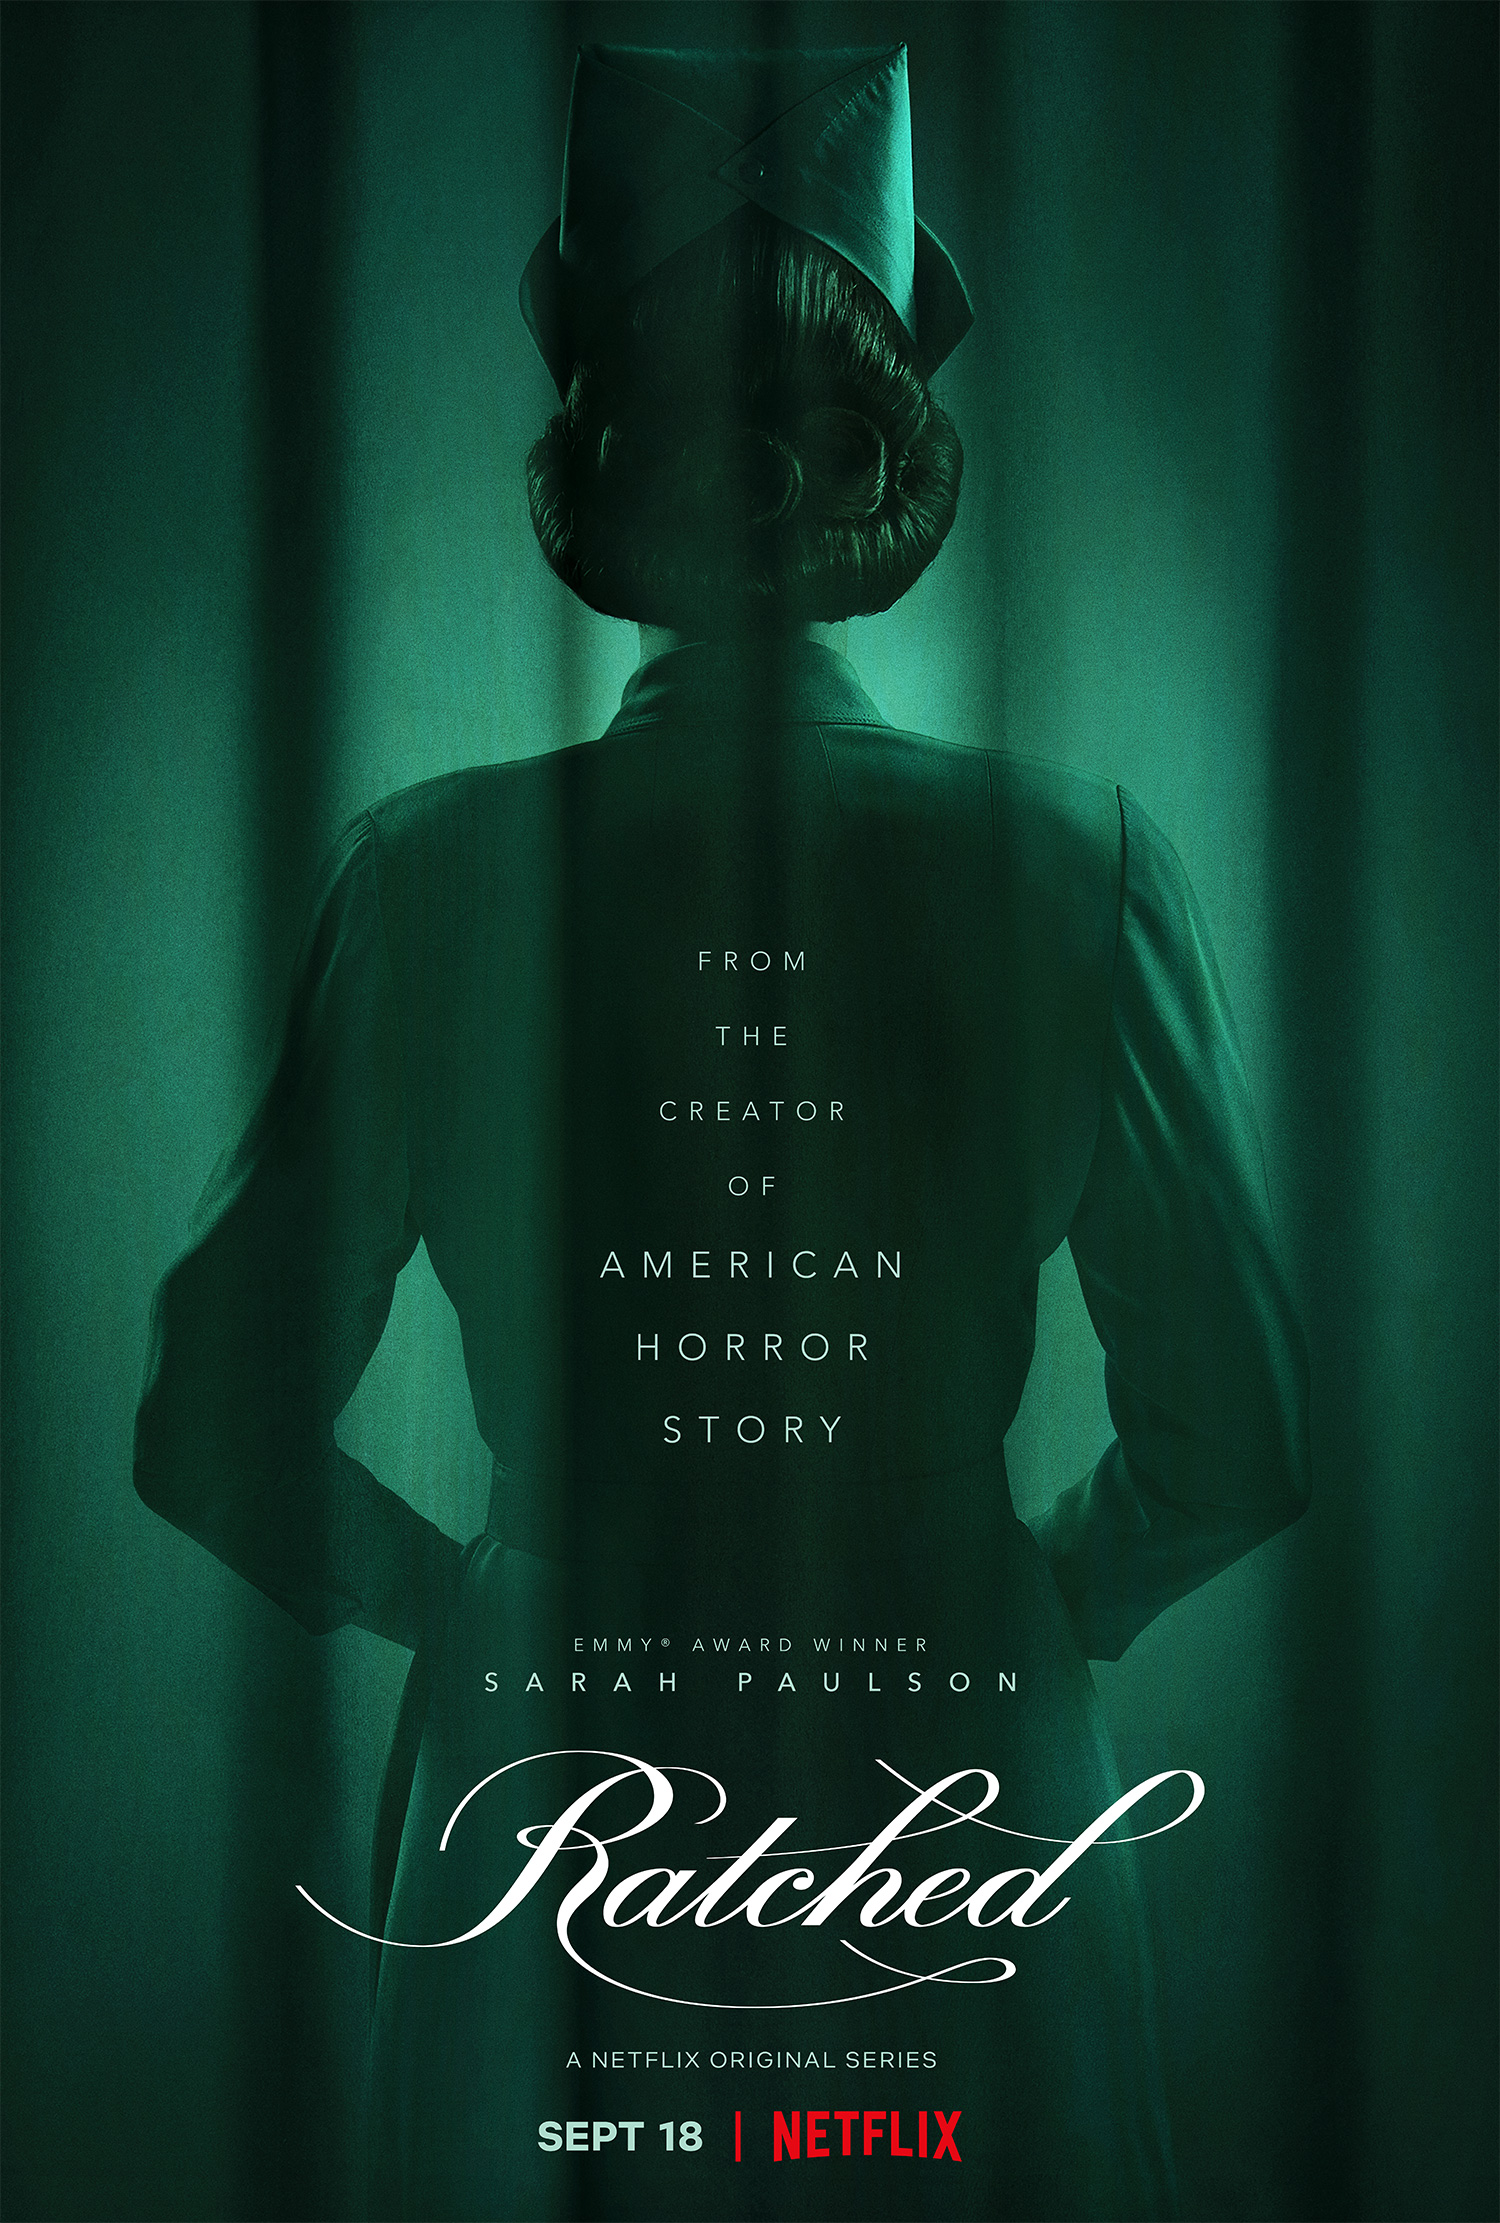 First Look: Netflix Ratched Starring Sarah Paulson